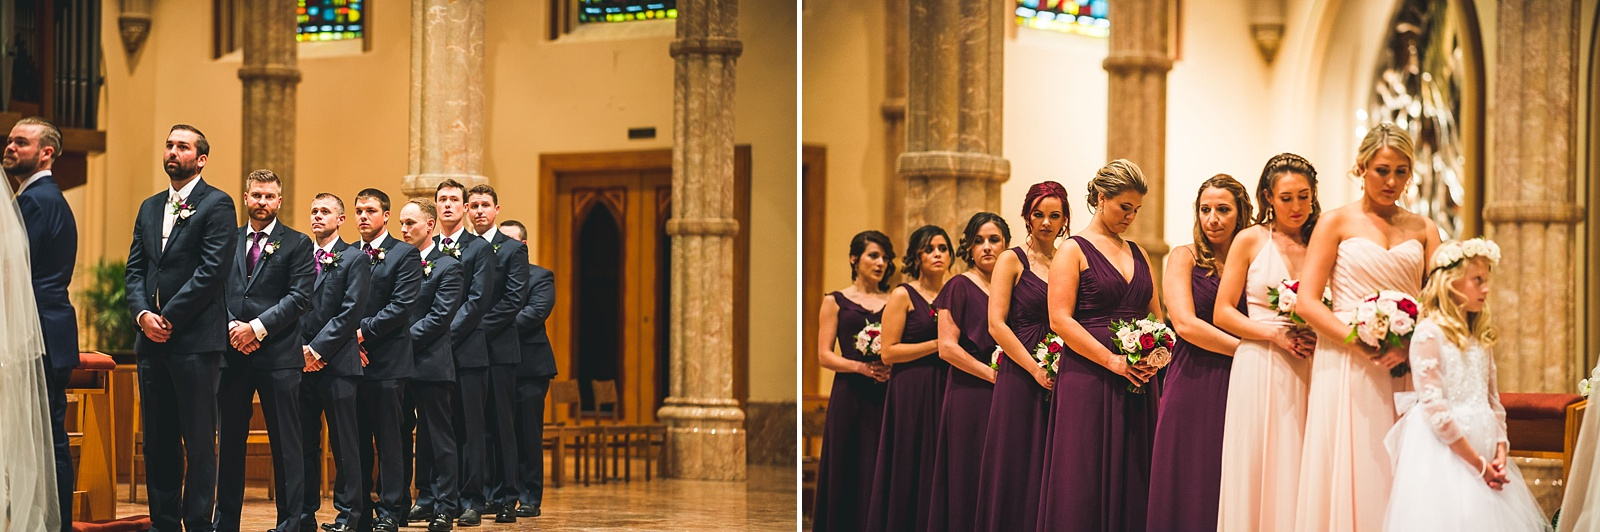 33 bridal party at church - Hilton Chicago Wedding Photographer // Sarah + Aaron